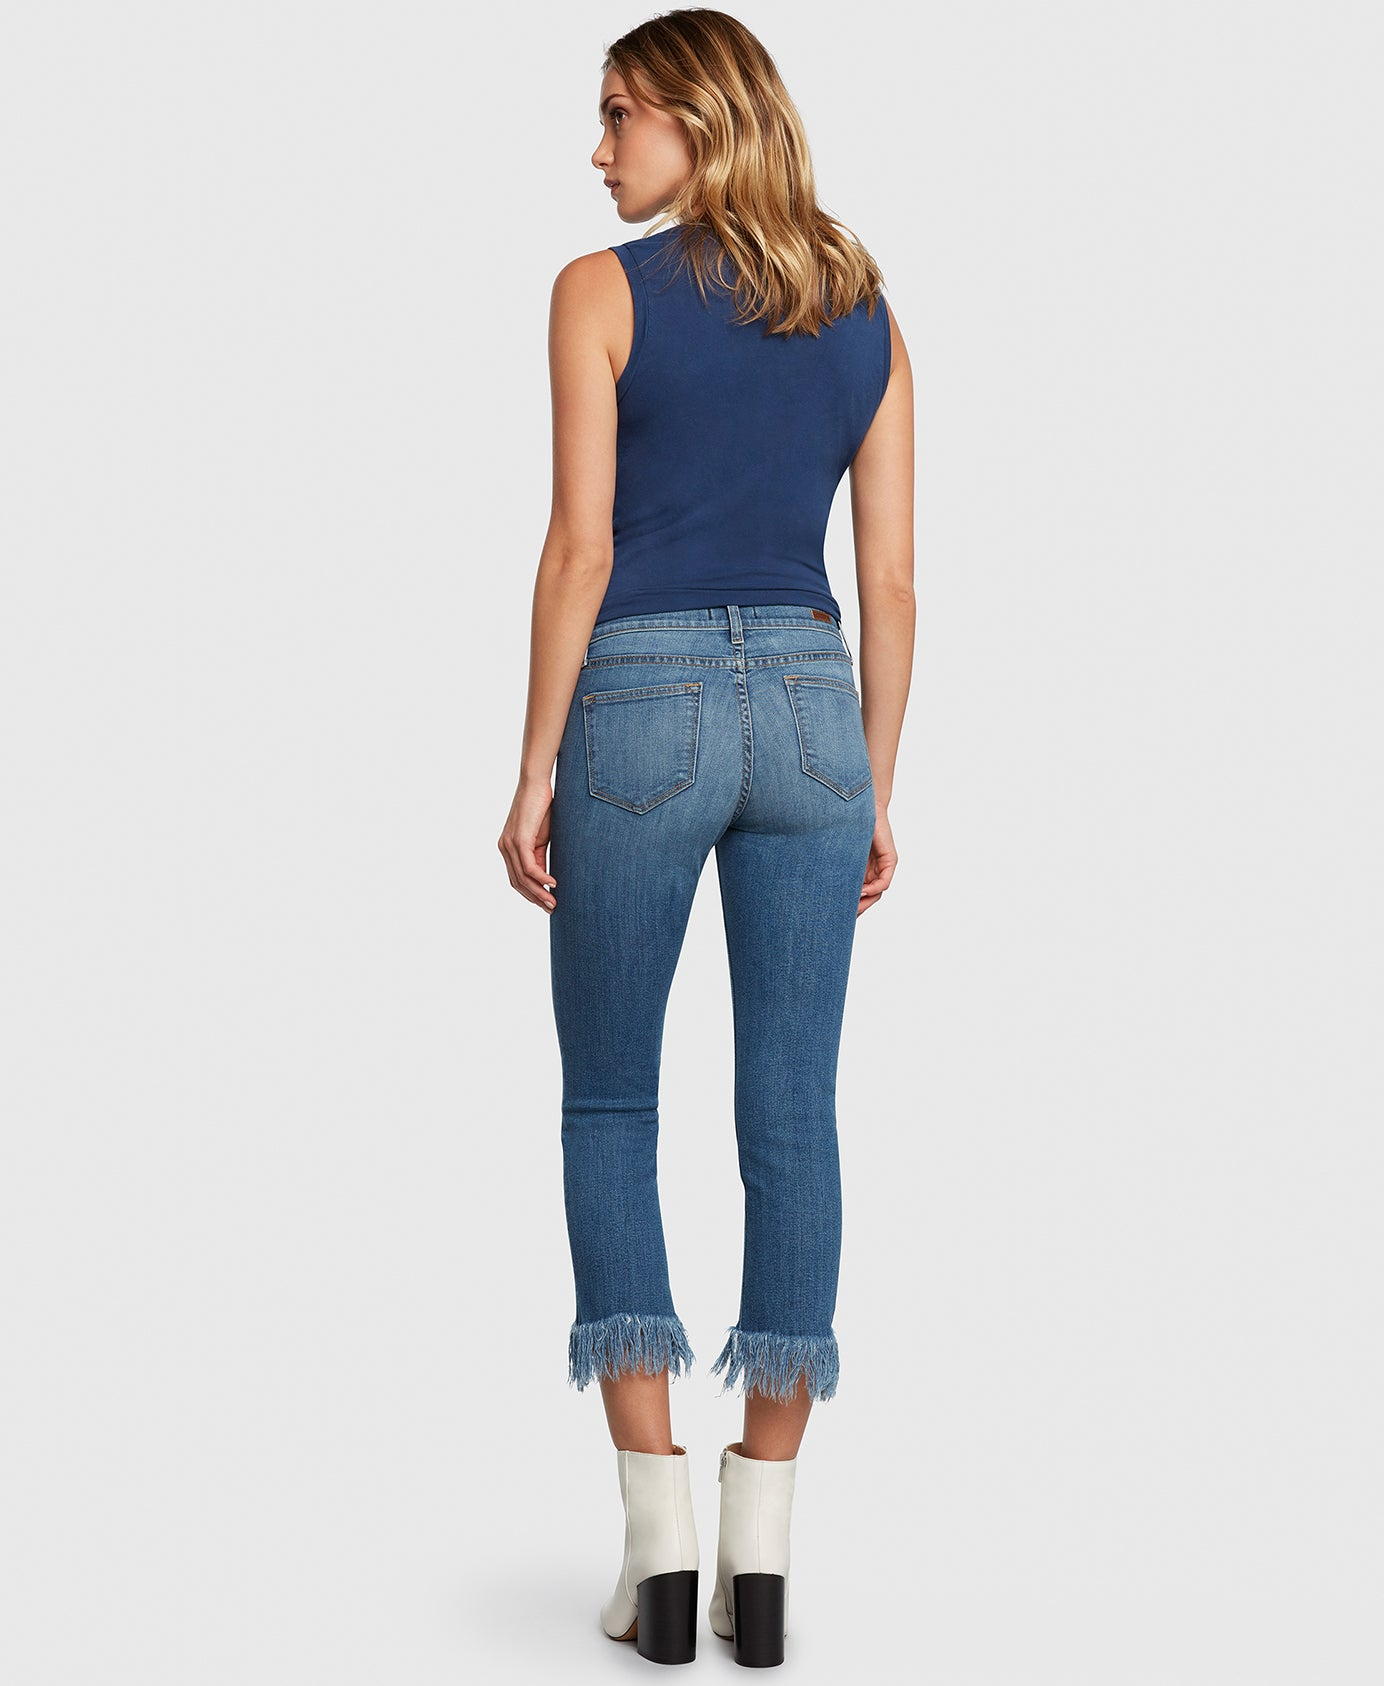 Principle OPTIMIST in True cropped jeans back